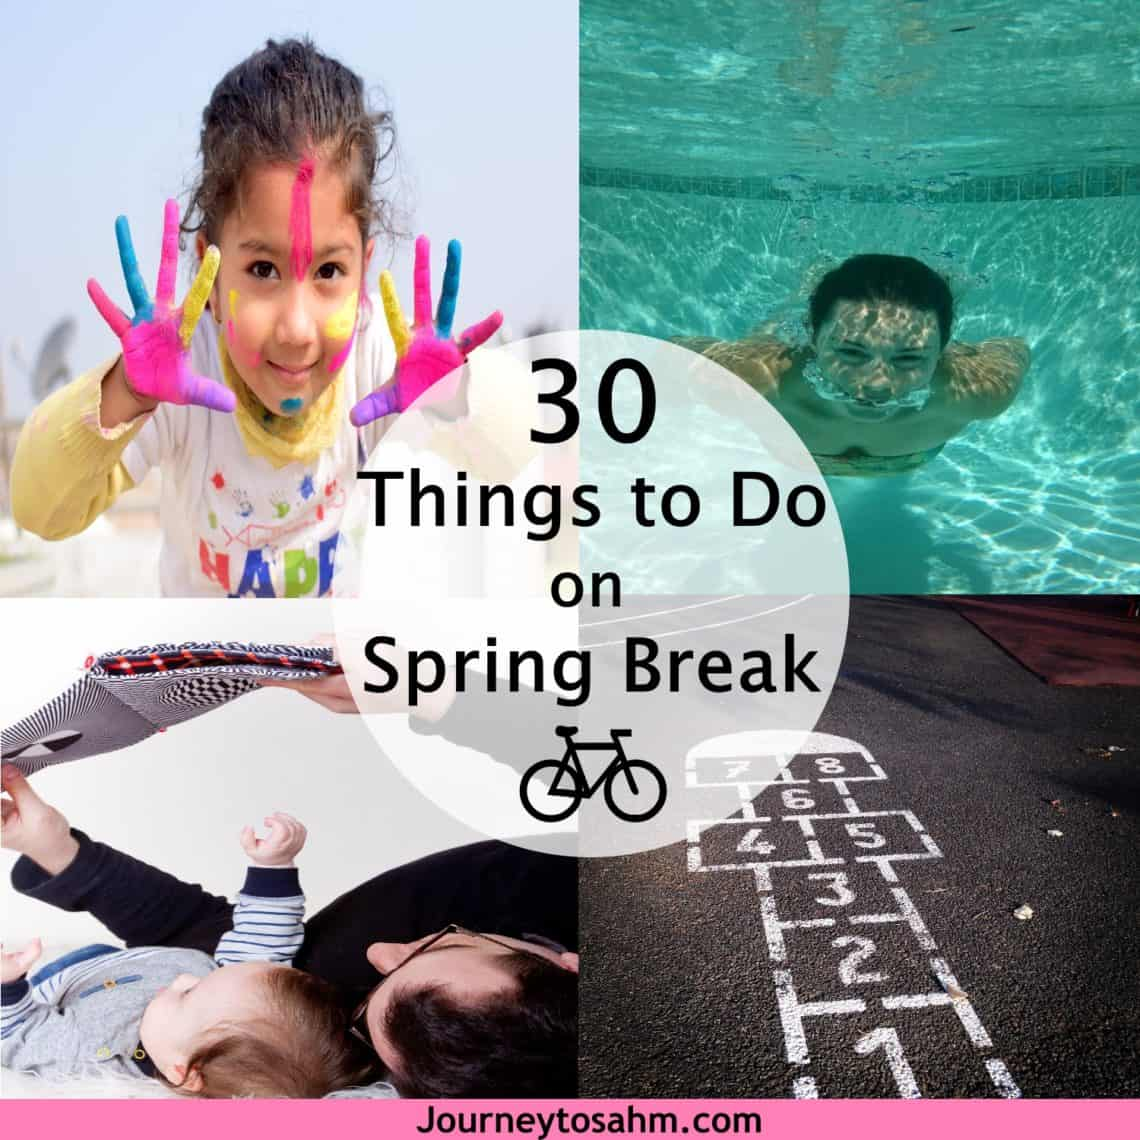 30 spring break activities for kids - journey to sahm